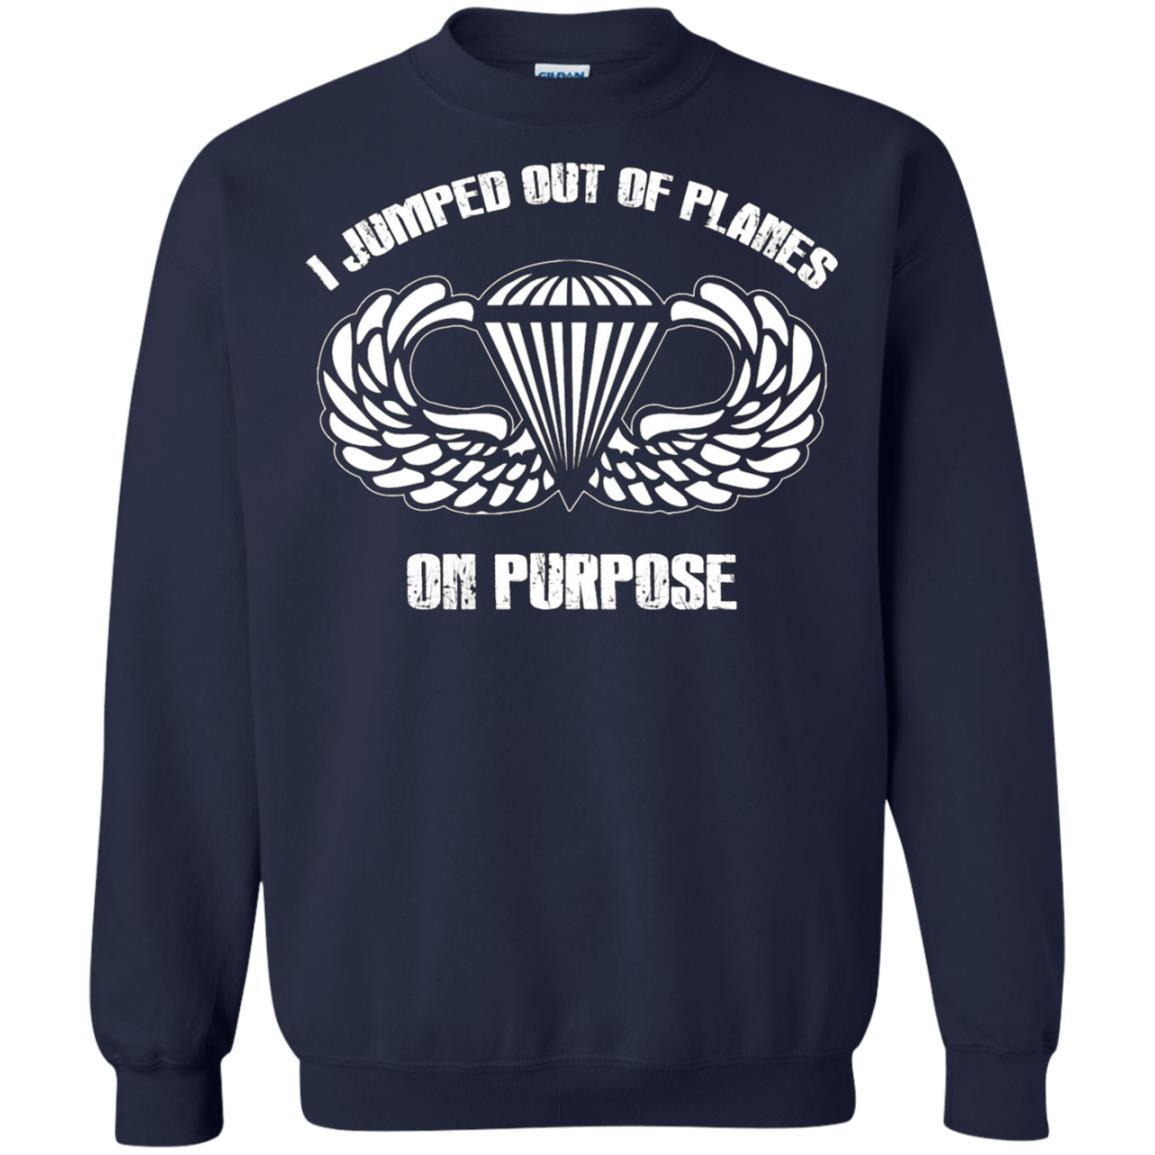 I jumped out of planes on purpose, Airborne - Crewneck Pullover Sweatshirt Navy / 5XL